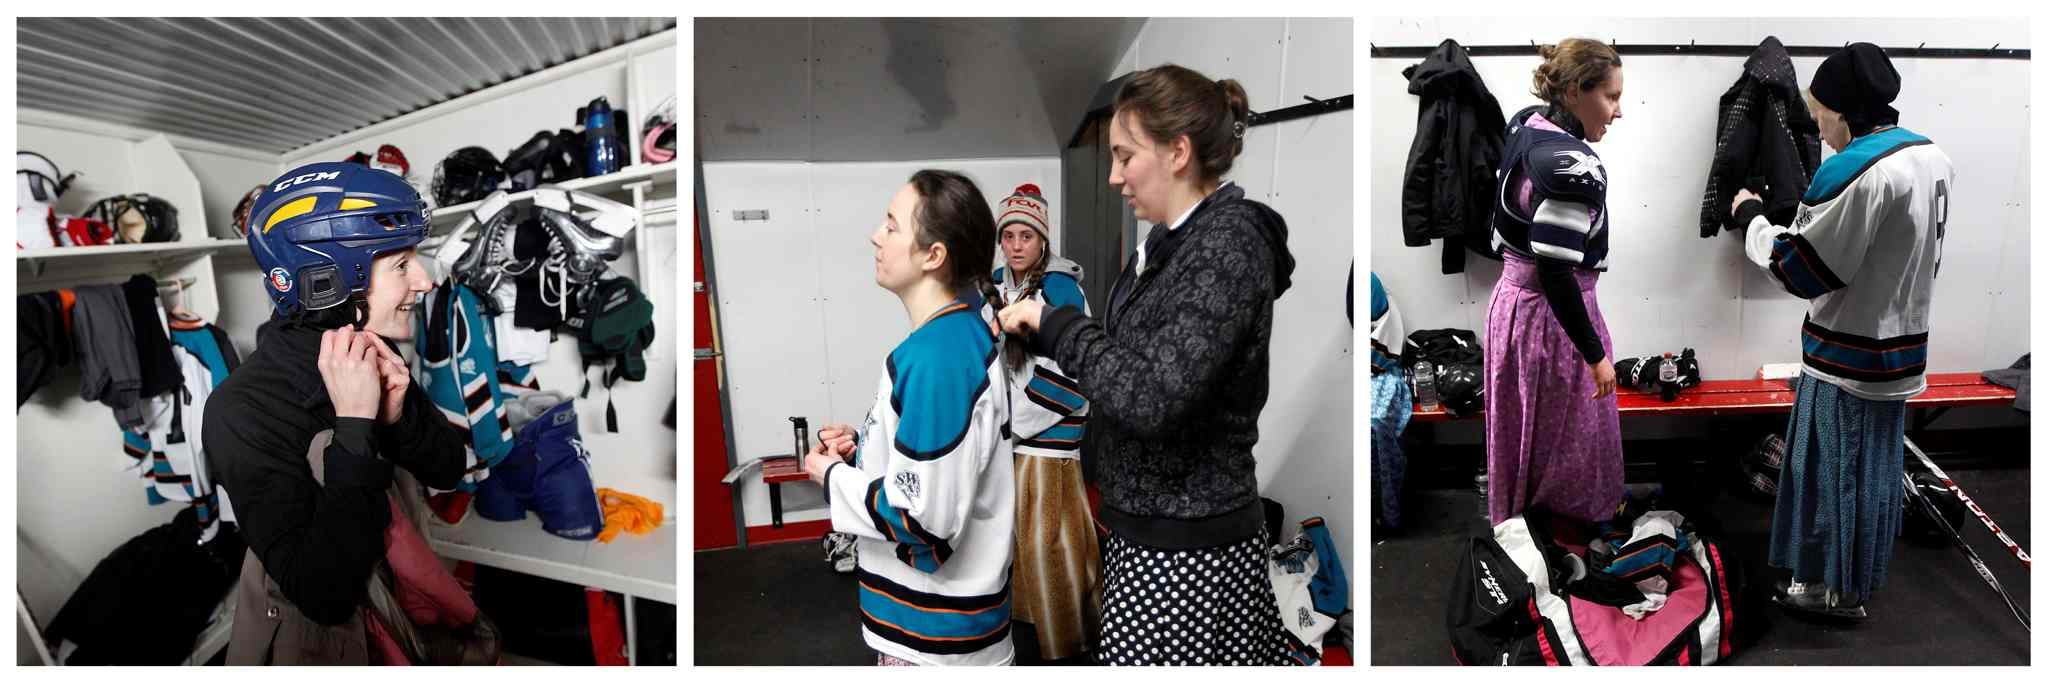 Left: Judith Maendel adjusts her helmet. Centre: Tabitha Wurtz braids her sister Doris's hair while younger sister Anya gets settled. Right: Karissa Maendel and Ashley Maendel get their game faces on. (Phil Hossack / Winnipeg Free Press)